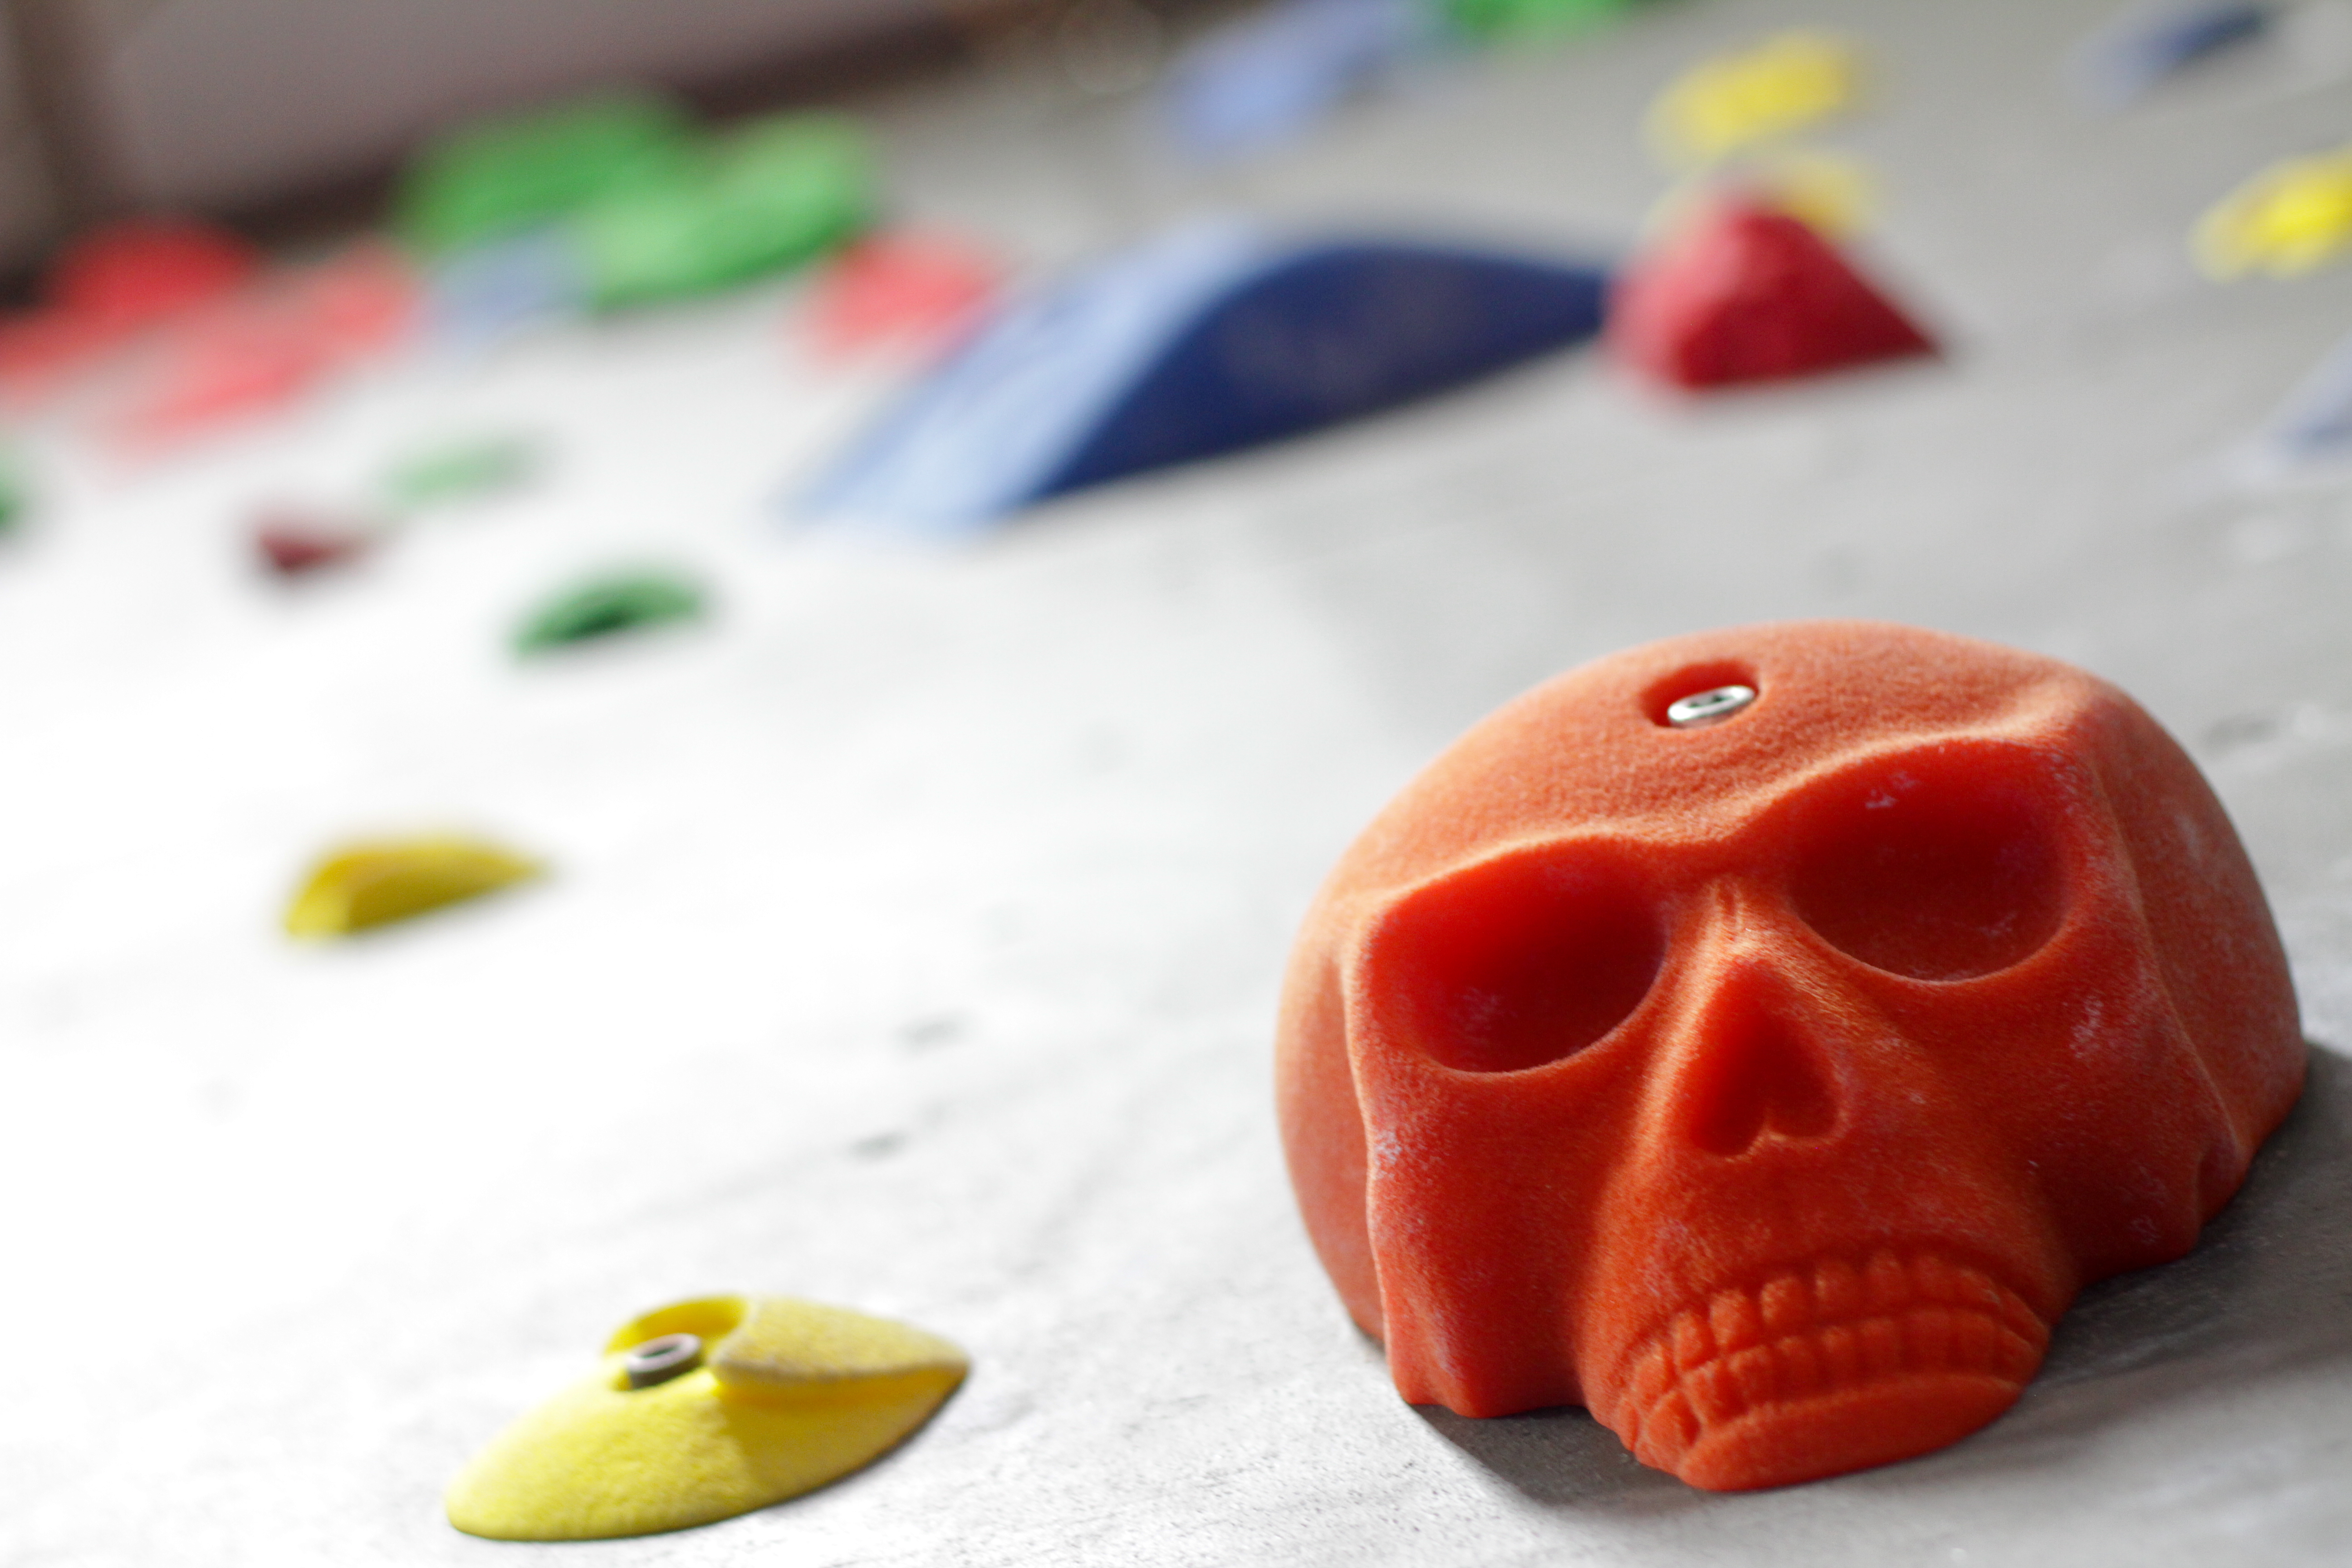 Skull-shaped Climbing holds